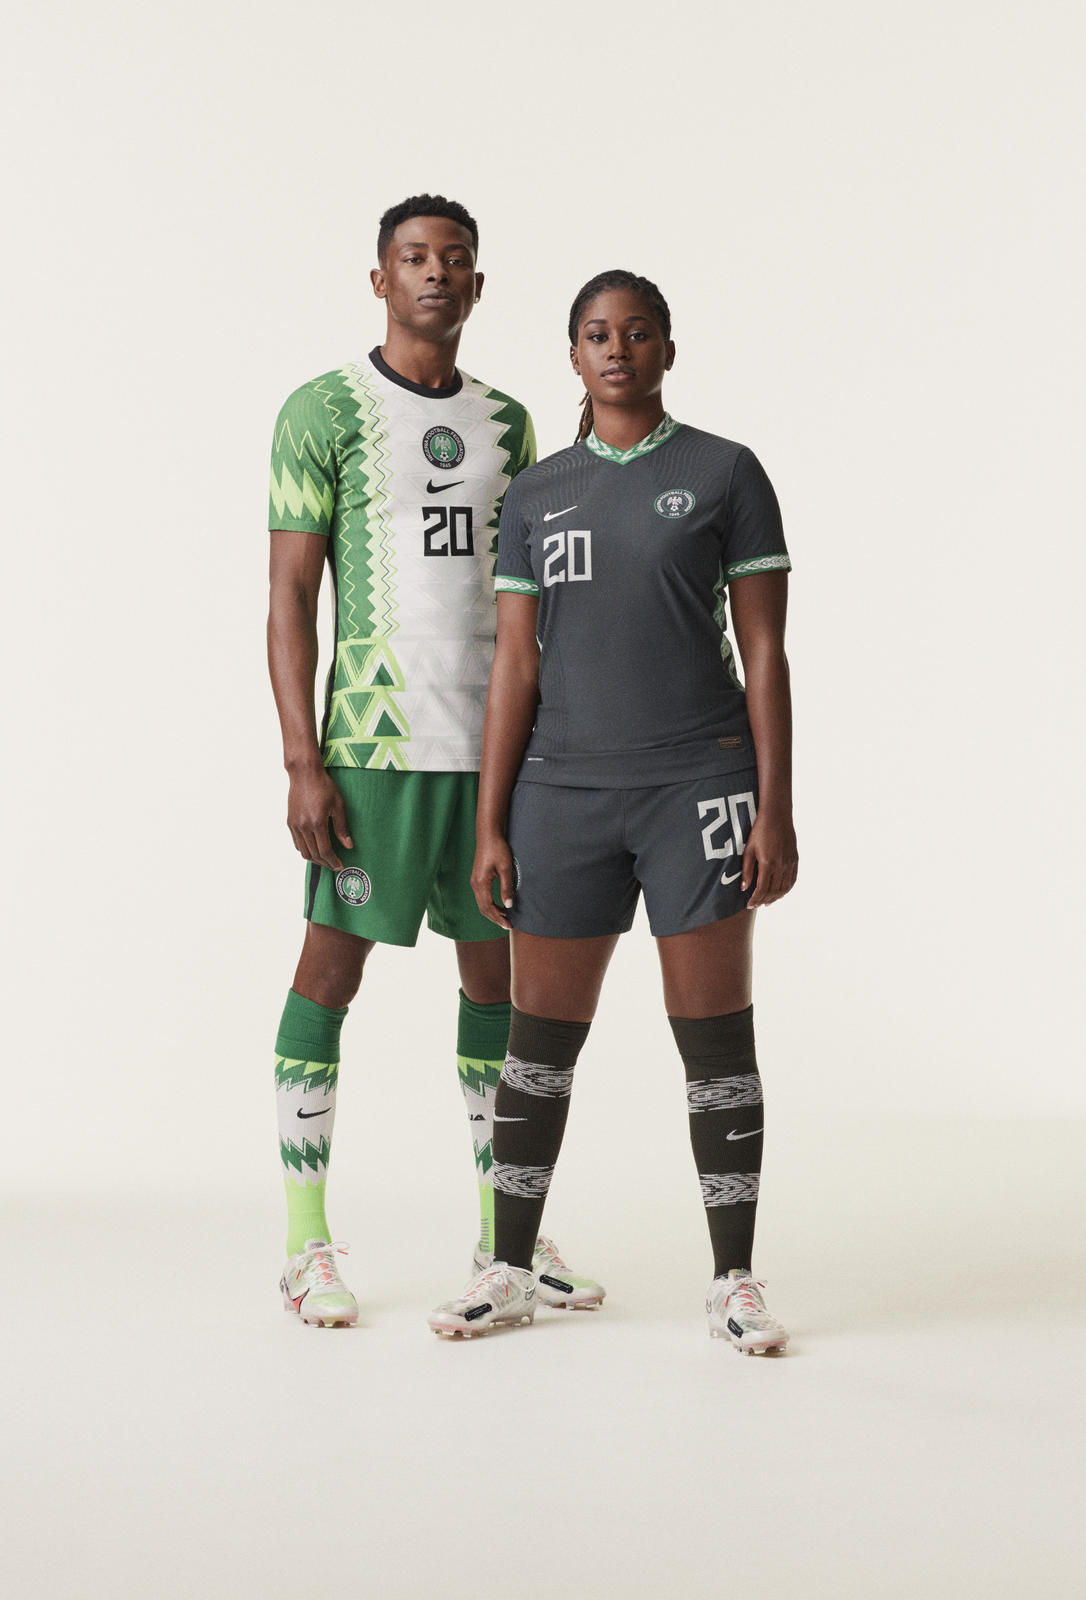 Nike Football 2020 Kits: Nigeria, Korea, USA 4